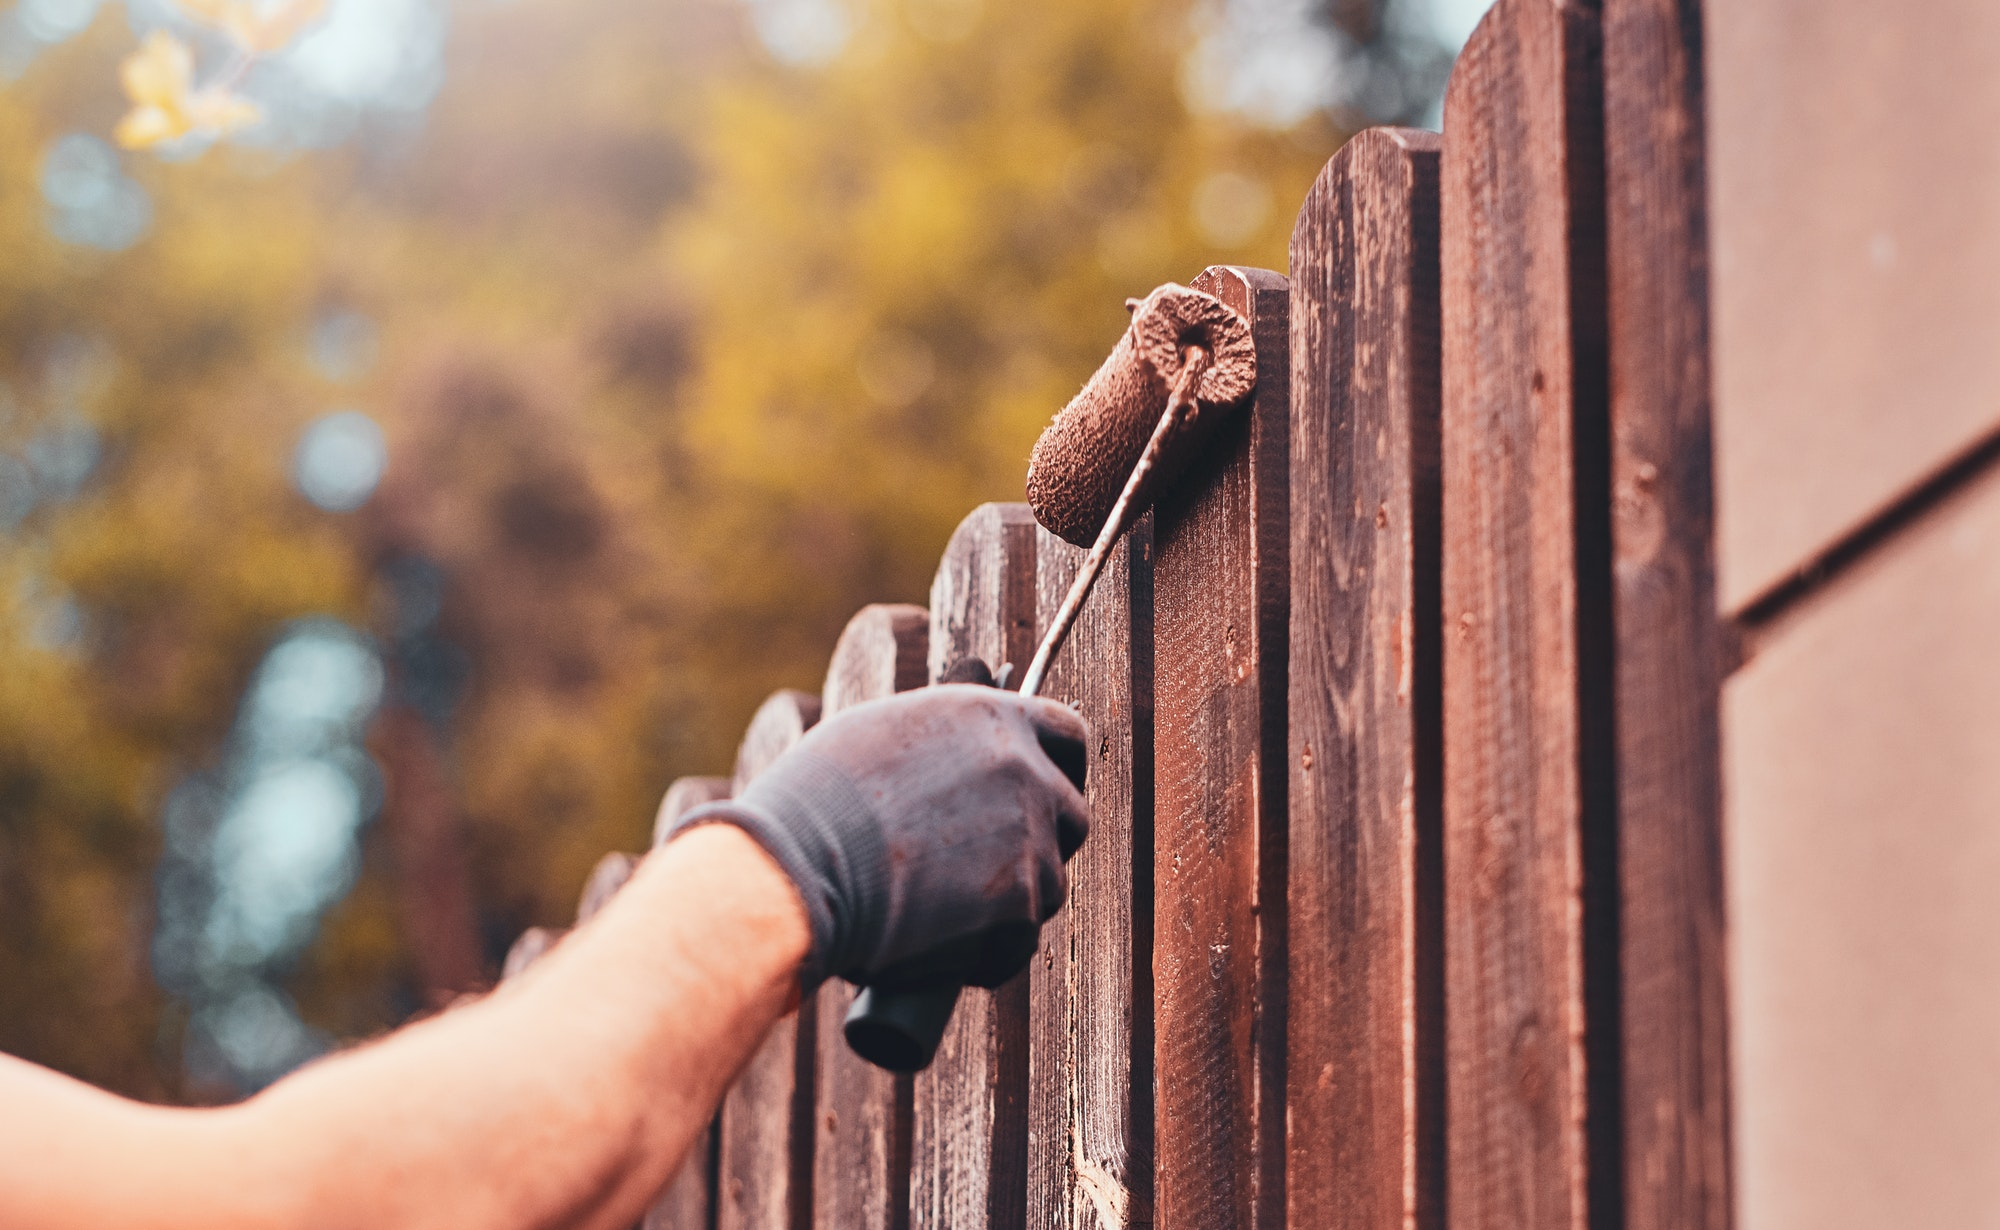 diligent-man-is-painting-fence-with-brush.jpg